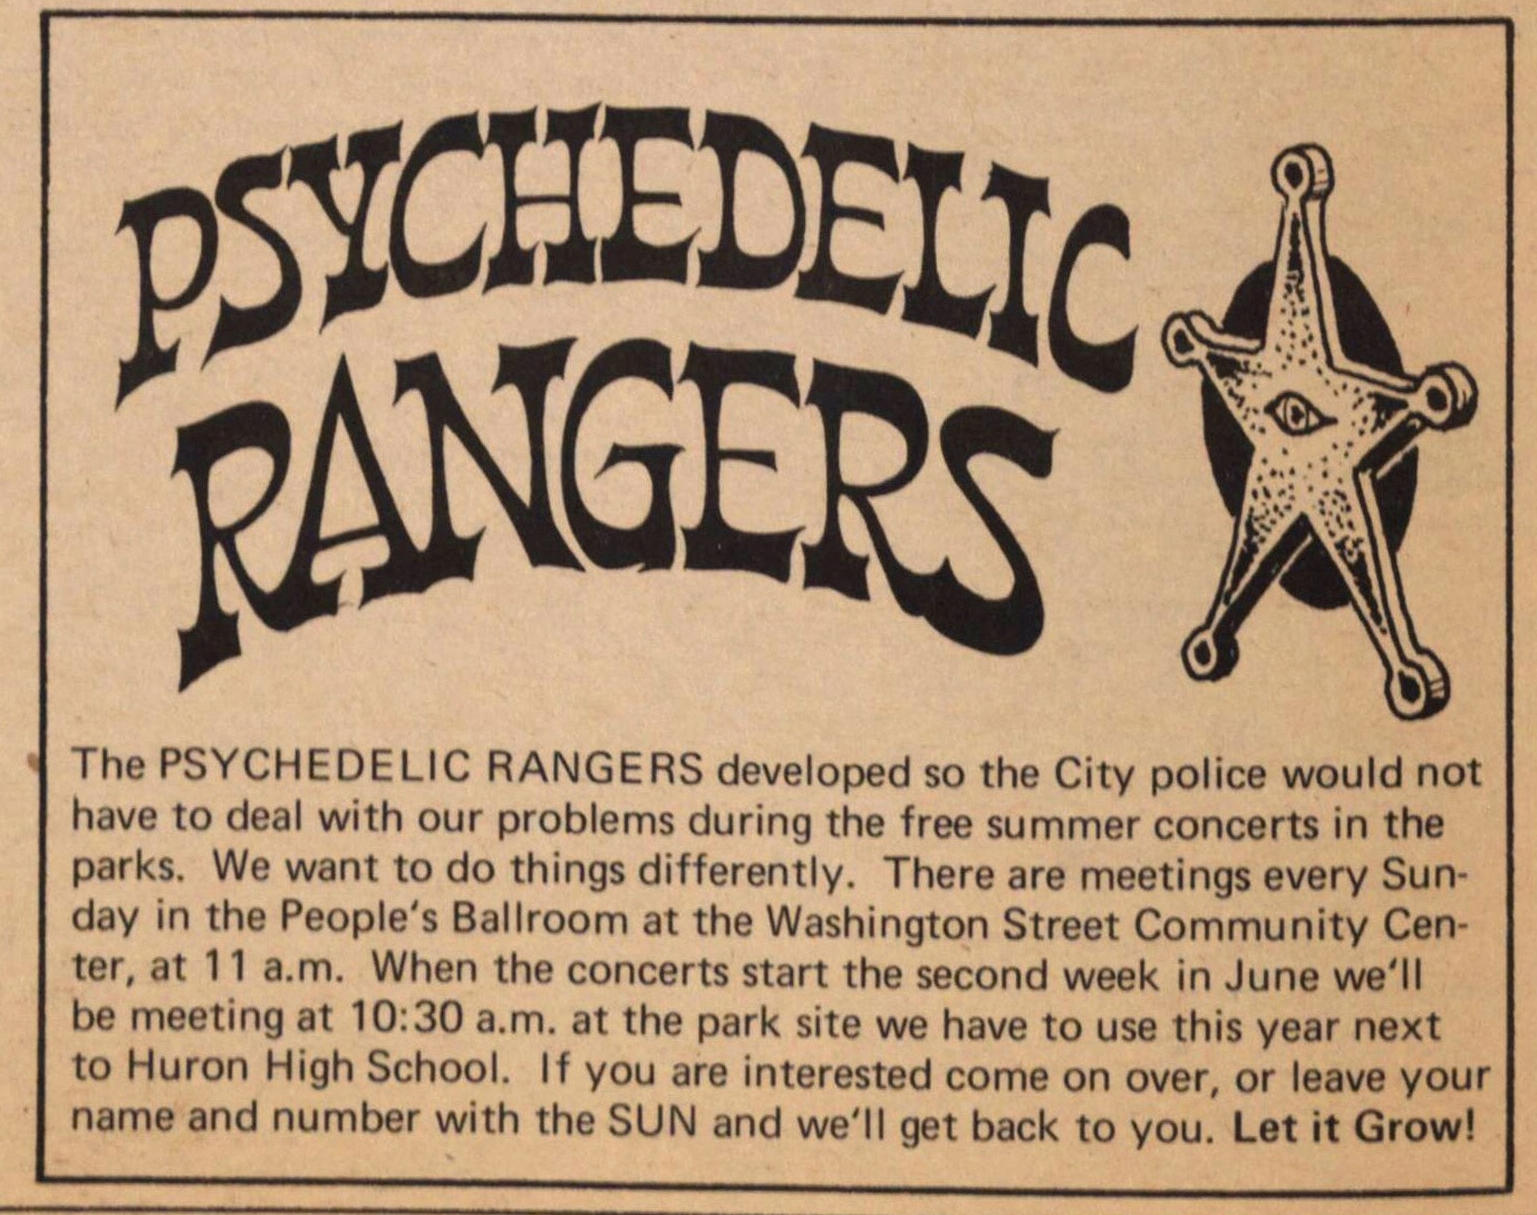 Psychedelic Rangers image